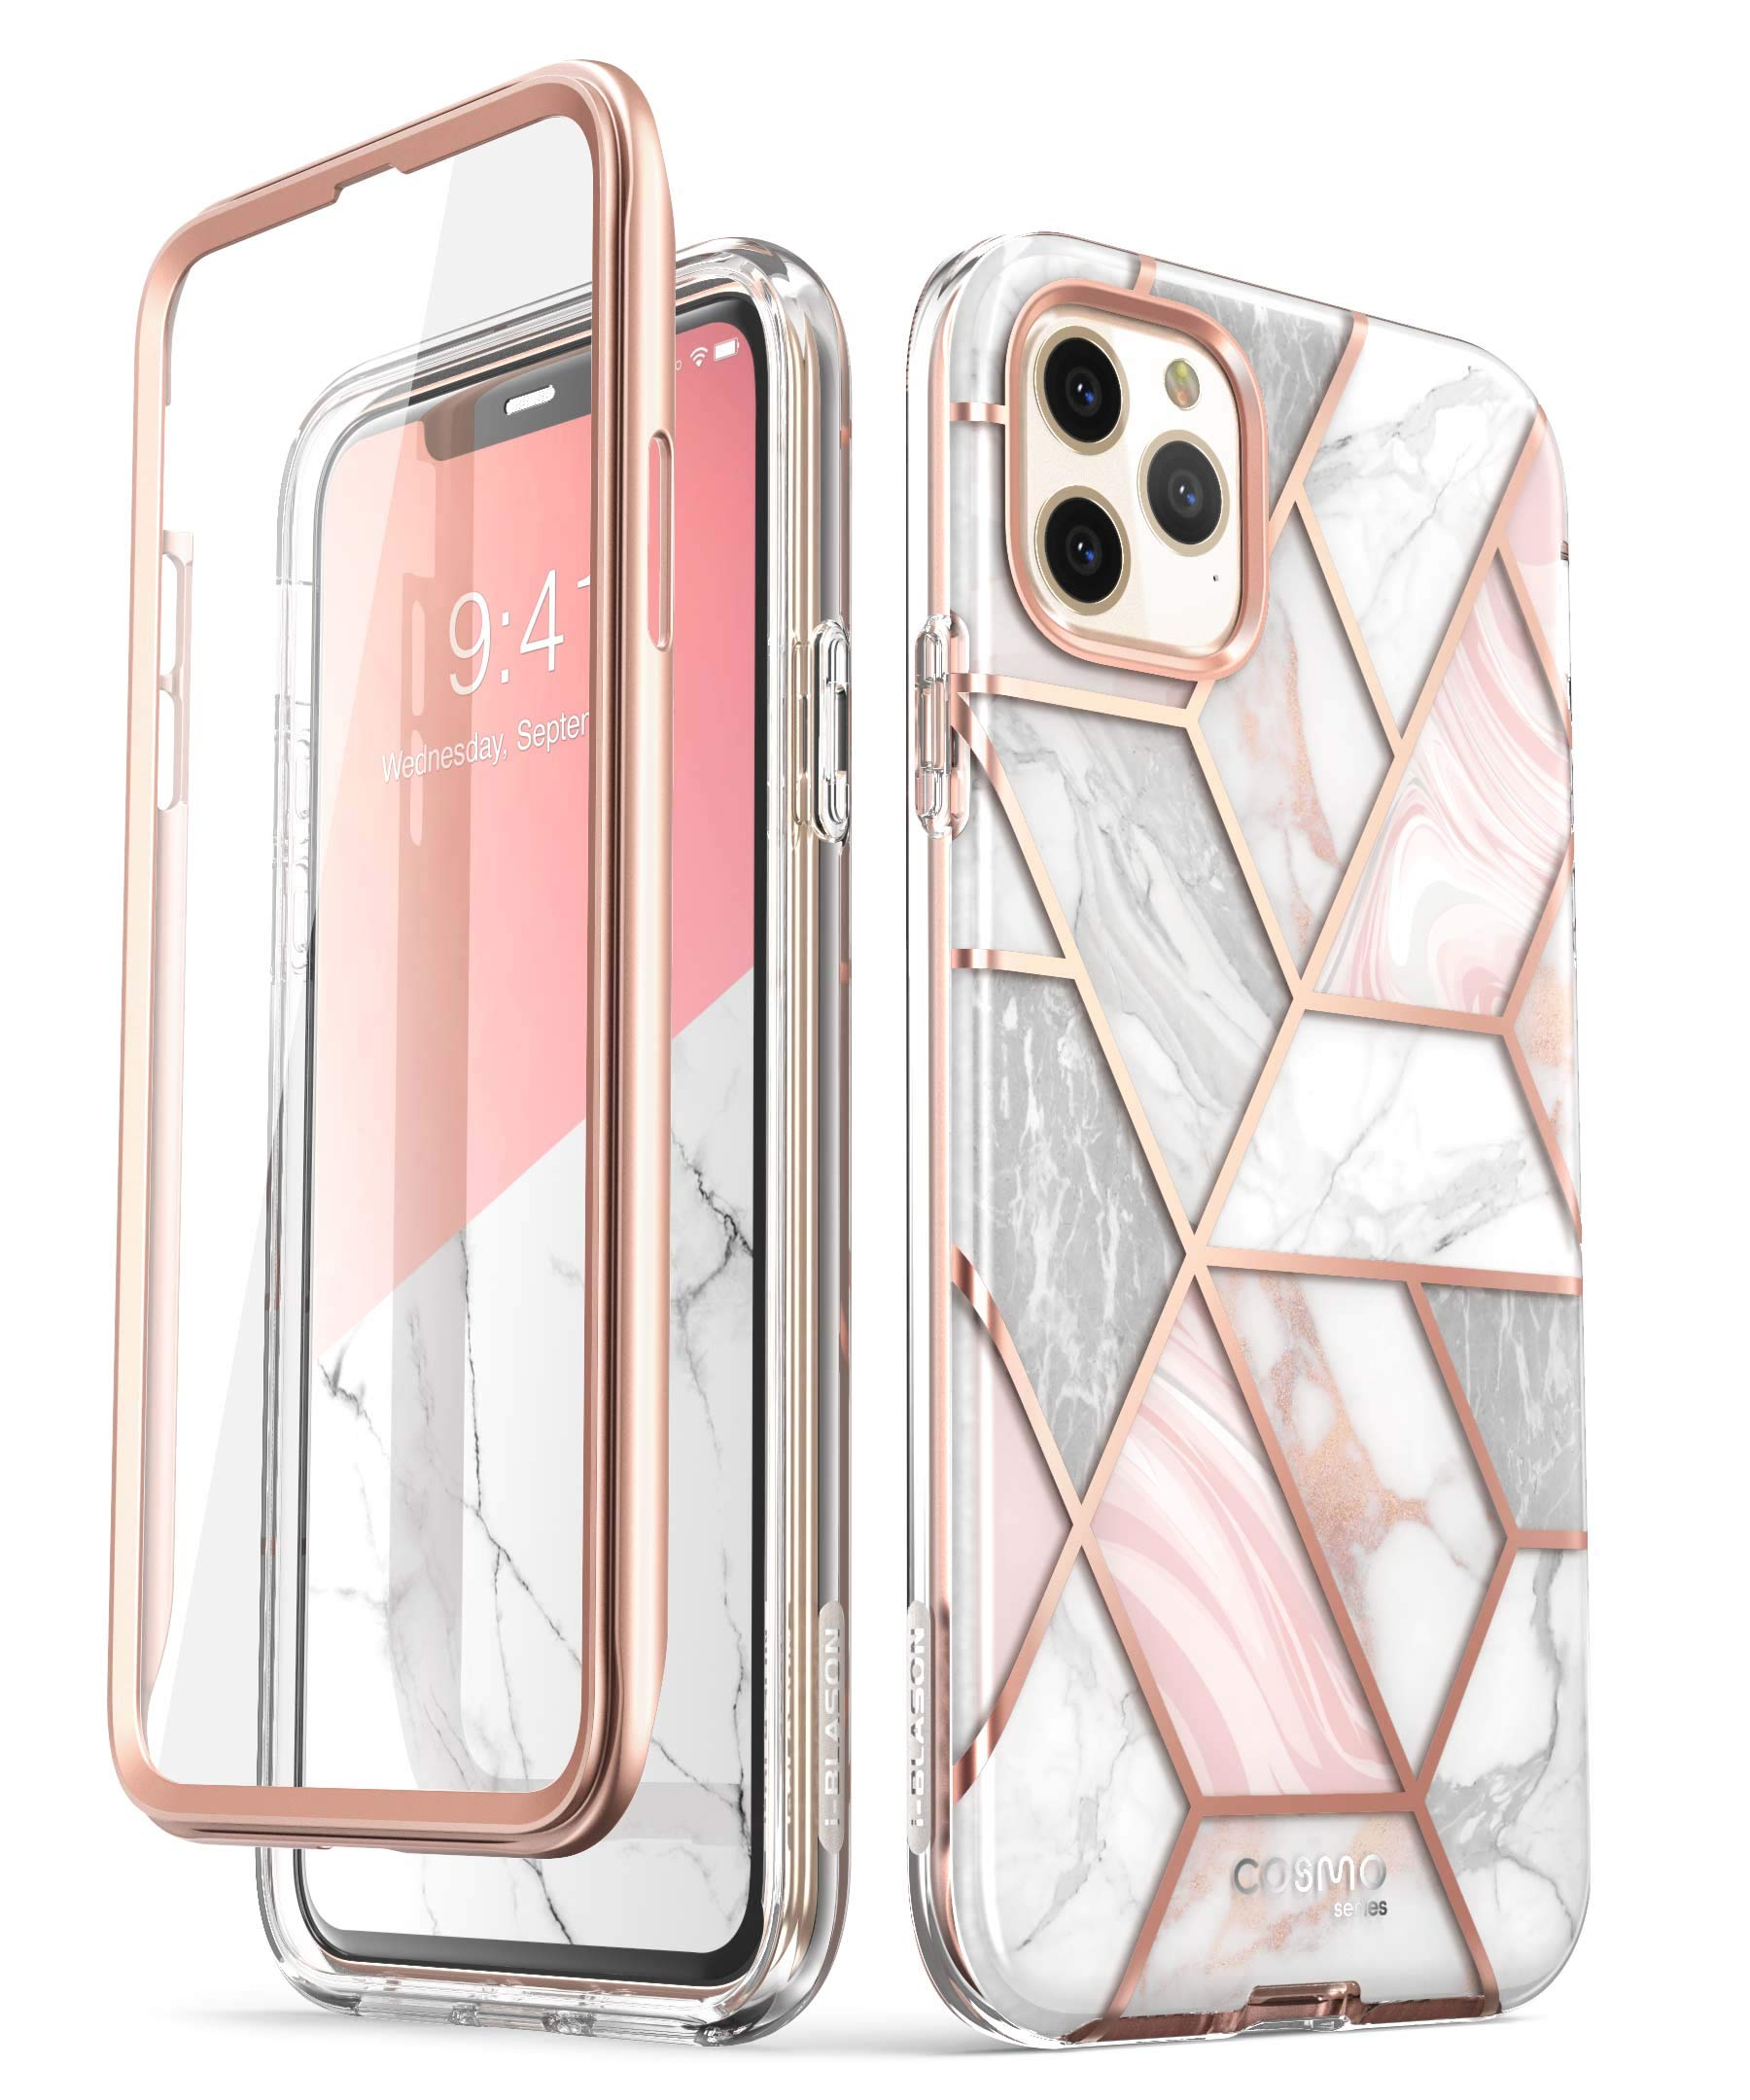 Clear Scratch Resistant Clear Case for iPhone 11 Pro 5.8 Inch 2019 Release i-Blason Halo Series for iPhone 11 Pro